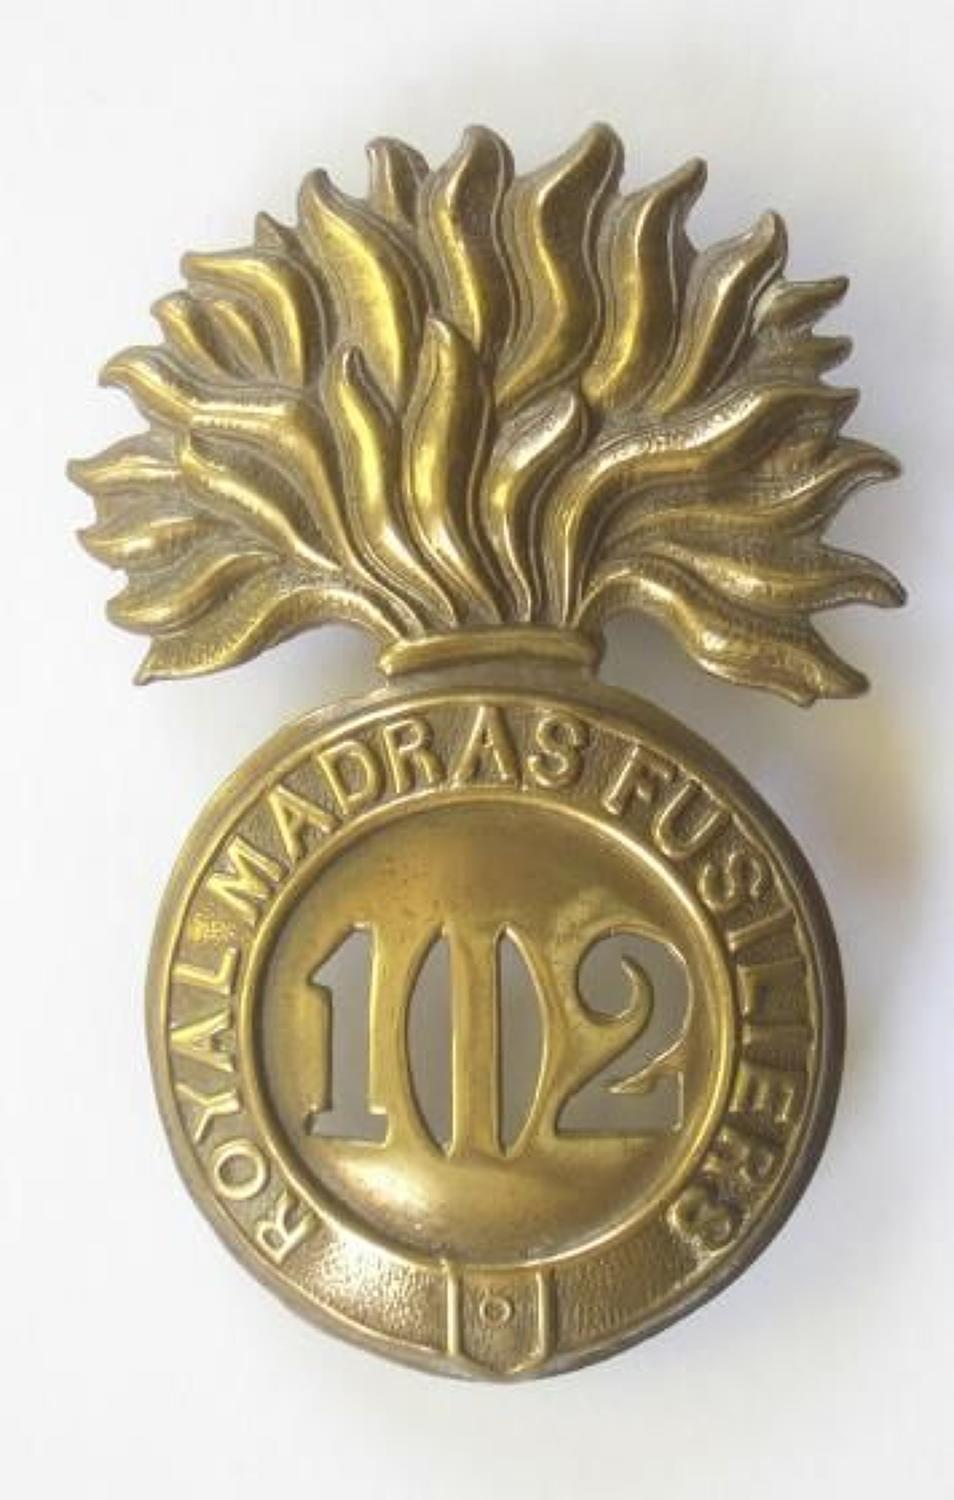 102nd Royal Madras Fusiliers Victorian glengarry badge circa 1874-81.